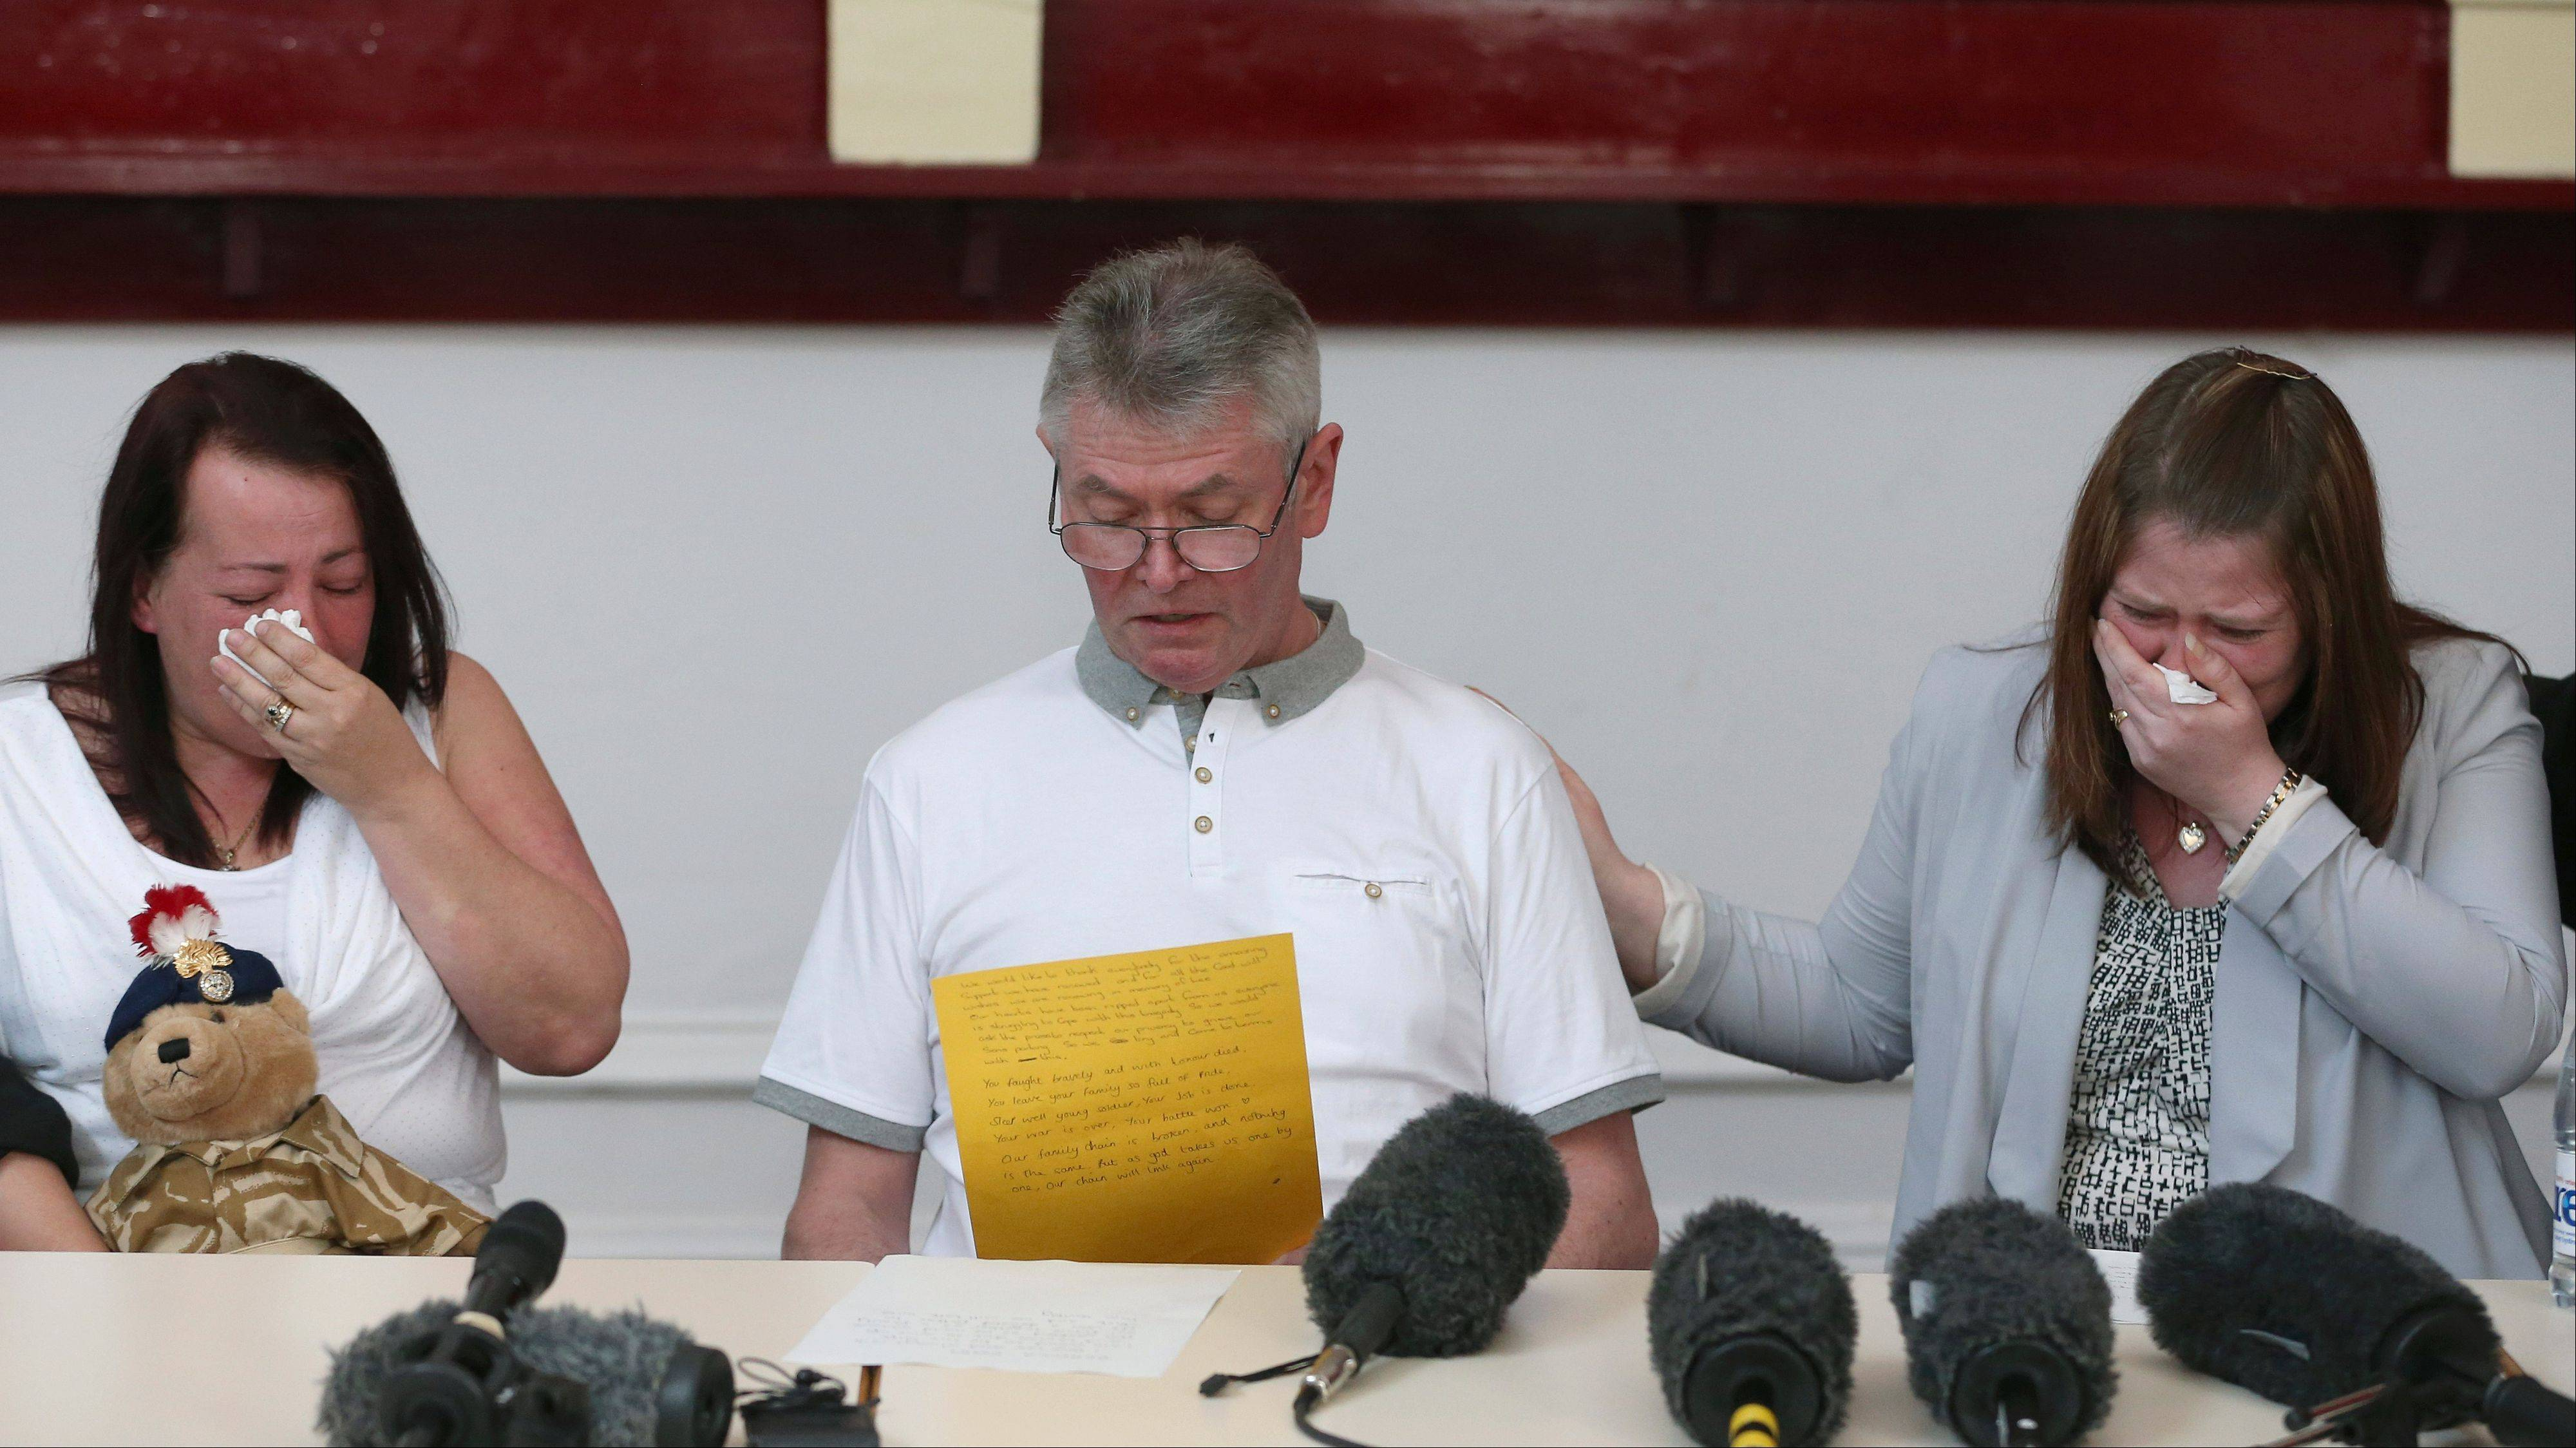 "Family members of murdered British soldier Lee Rigby, from left to right, his mother Lyn, stepfather Ian, and his wife Rebecca Rigby, as his stepfather reads a statement during a news conference at the Regimental HQ of his unit, the Royal Regiment of Fusiliers at Bury in Greater Manchester, England, Friday May 24. Ian Rigby thanked people for their support and including the tribute ""You fought bravely and with honor died."" Drummer Lee Rigby had served in Afghanistan and was attached to the Regimental Recruiting Team when he was hacked to death in broad daylight on Wednesday afternoon in Woolwich, southeast London. Two suspects were shot and arrested at the scene and remain in police custody."